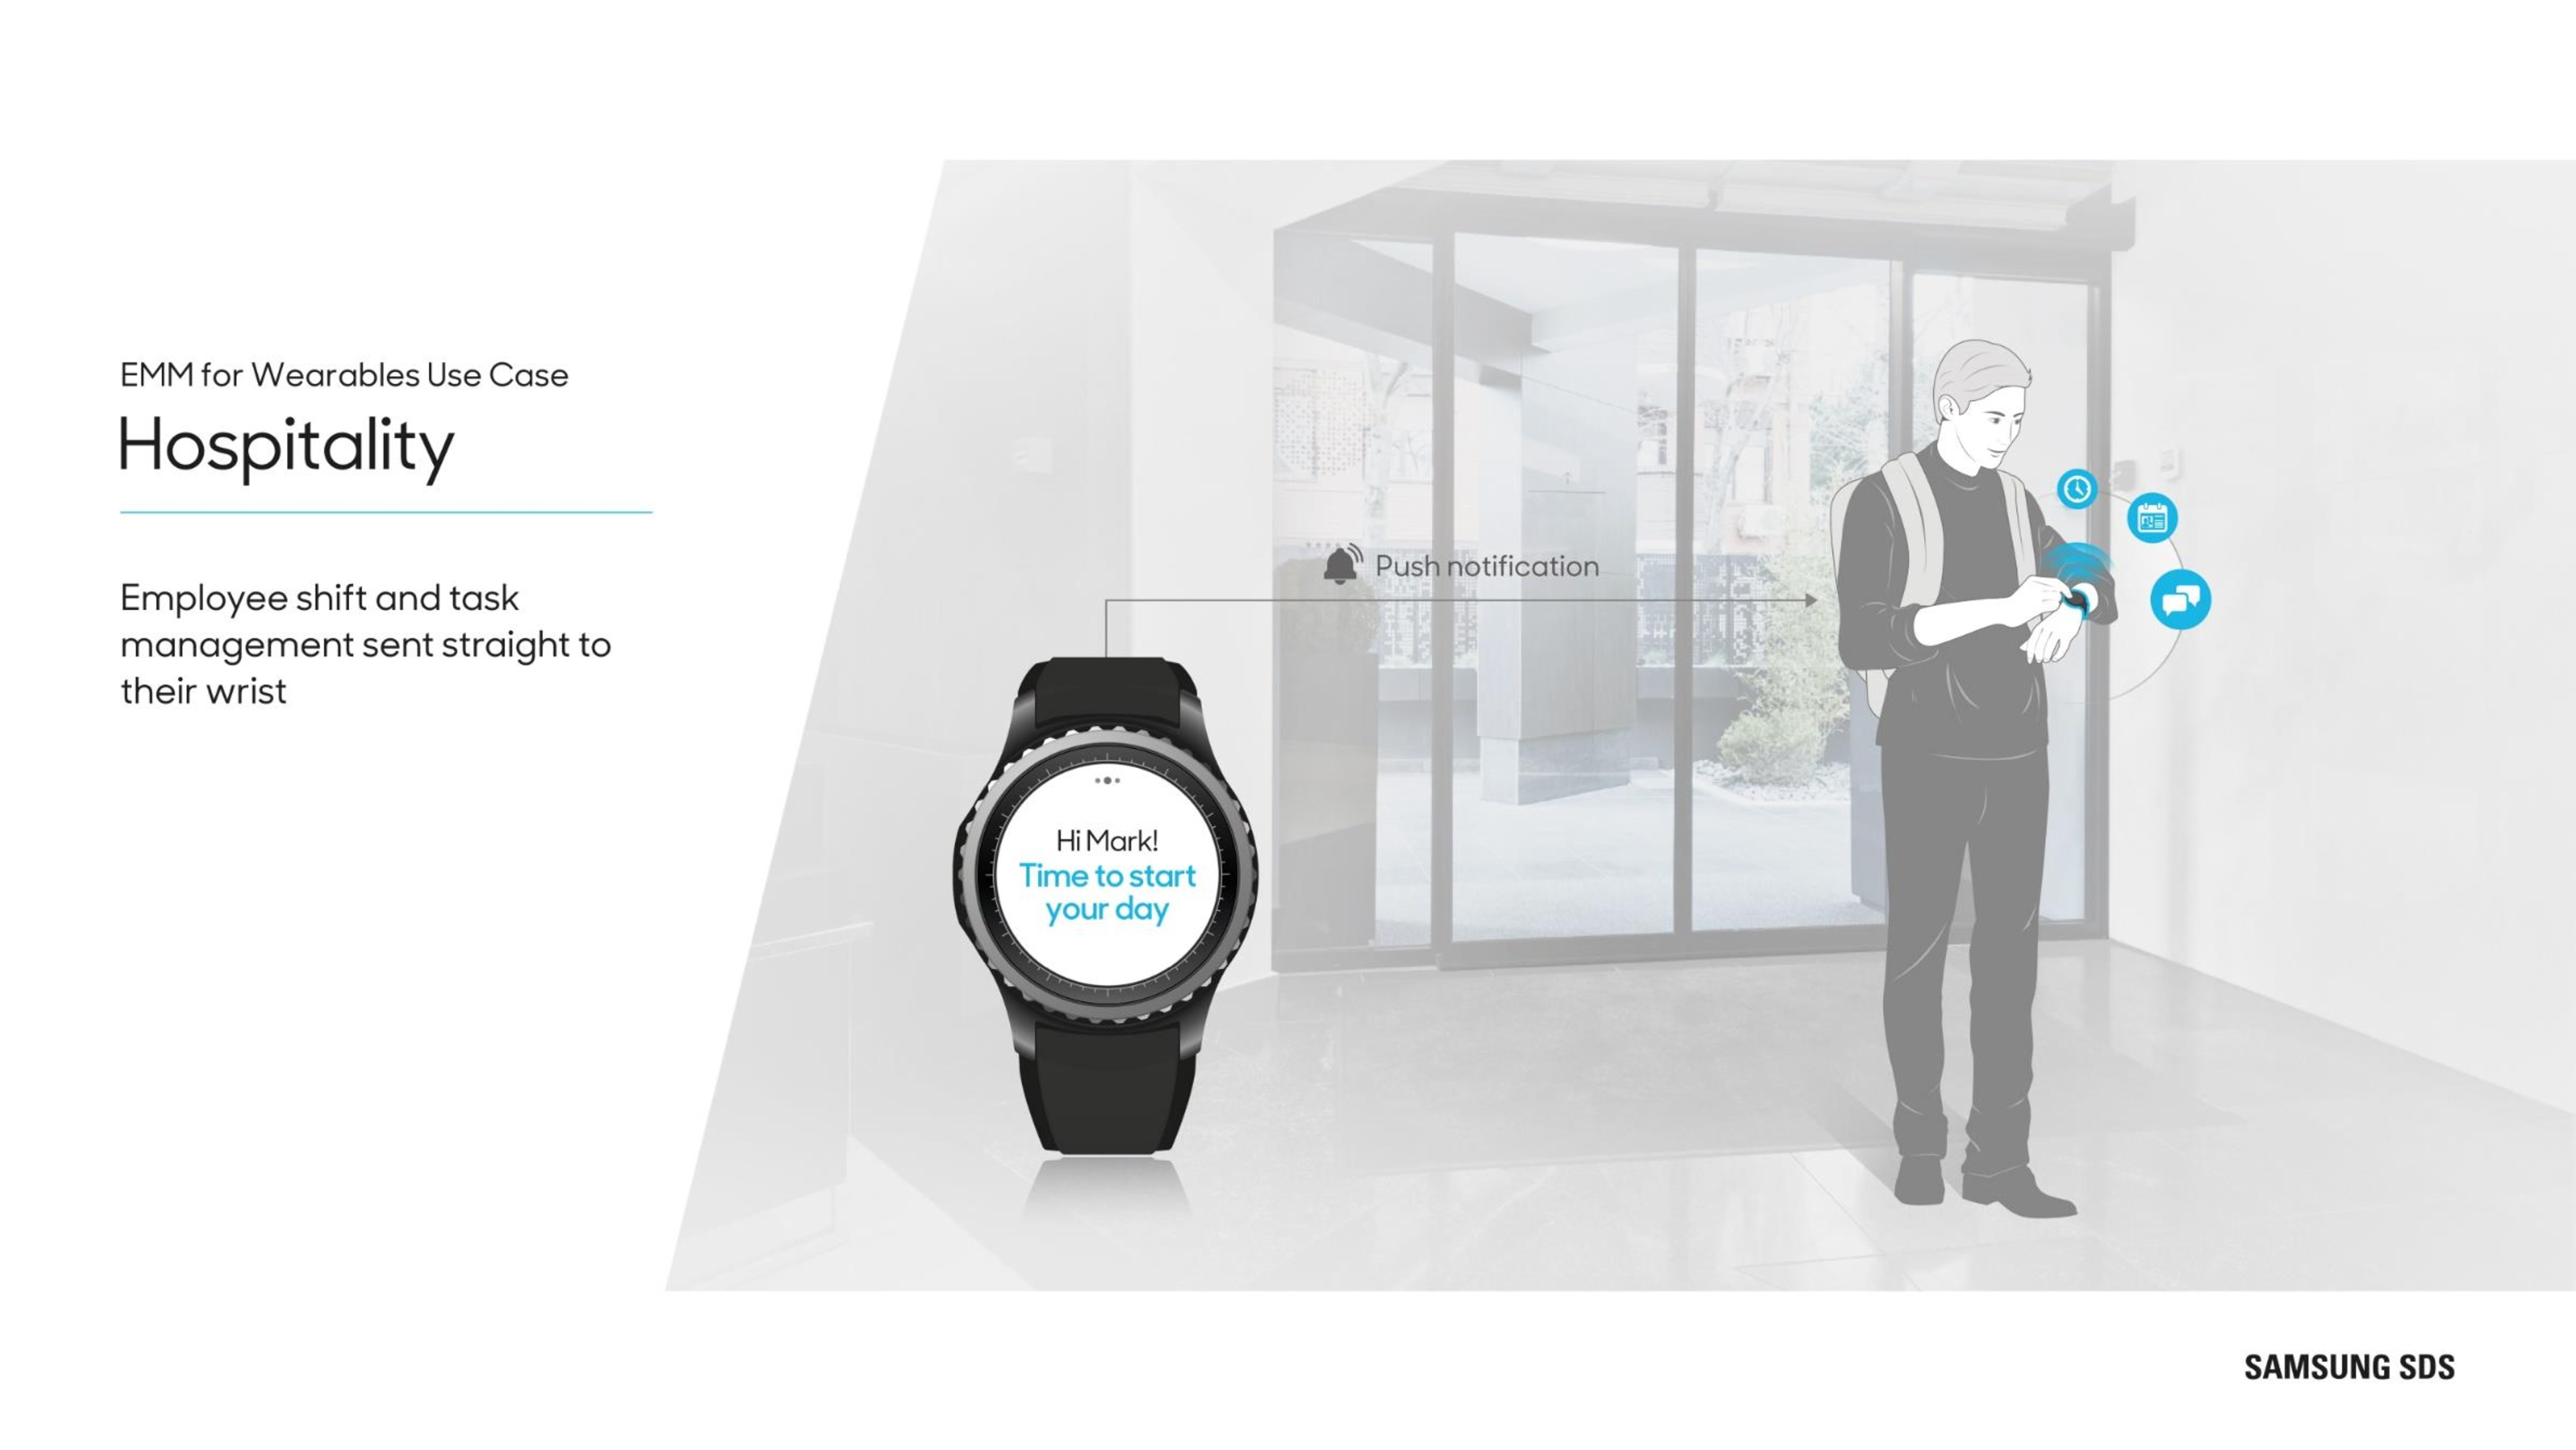 Wearables in Hospitality Employees shift and task management sent straight to their wrist